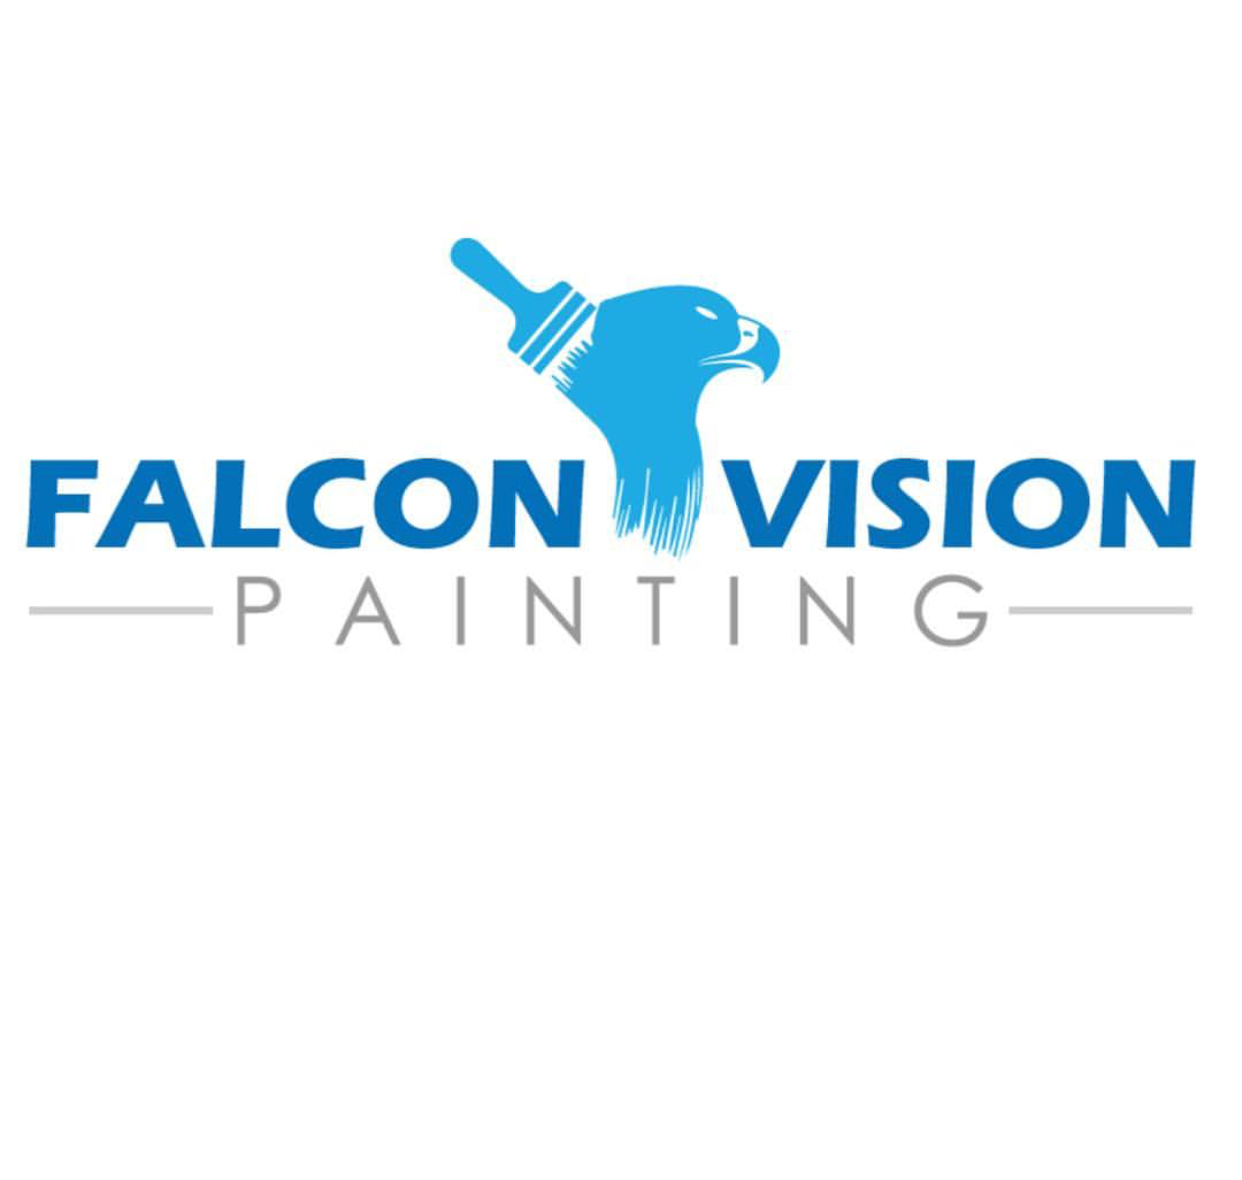 Falcon Vision Painting - Black Owned